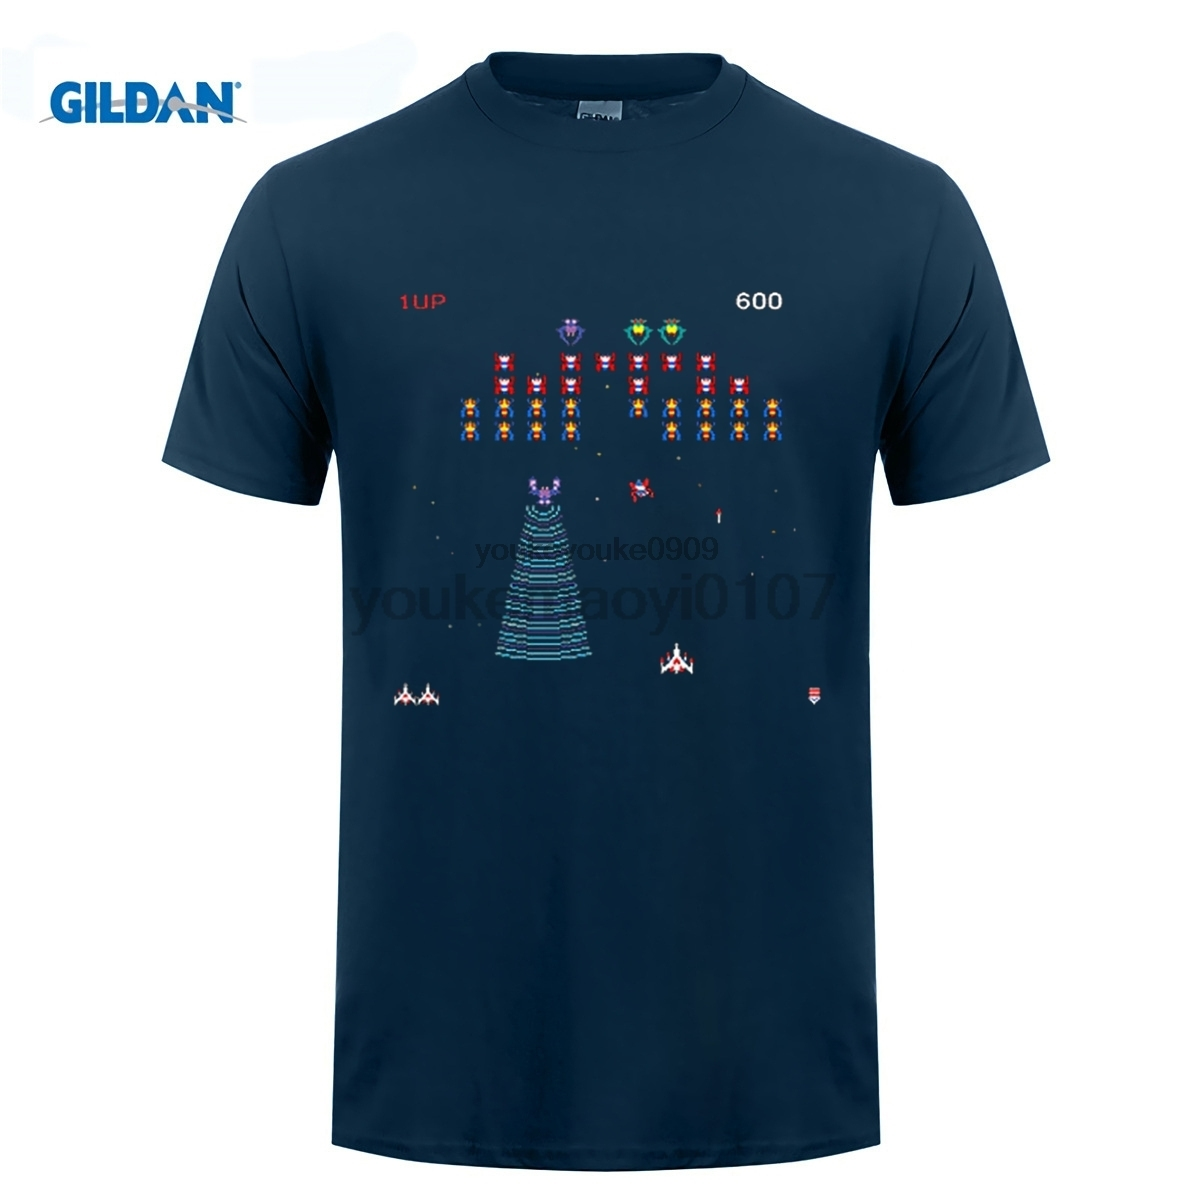 GILDAN GALAGA Arcade Game Retro Gamer Classic Mens Black T-Shirt Size S-2XL 100% Cotton Youth Round Collar T